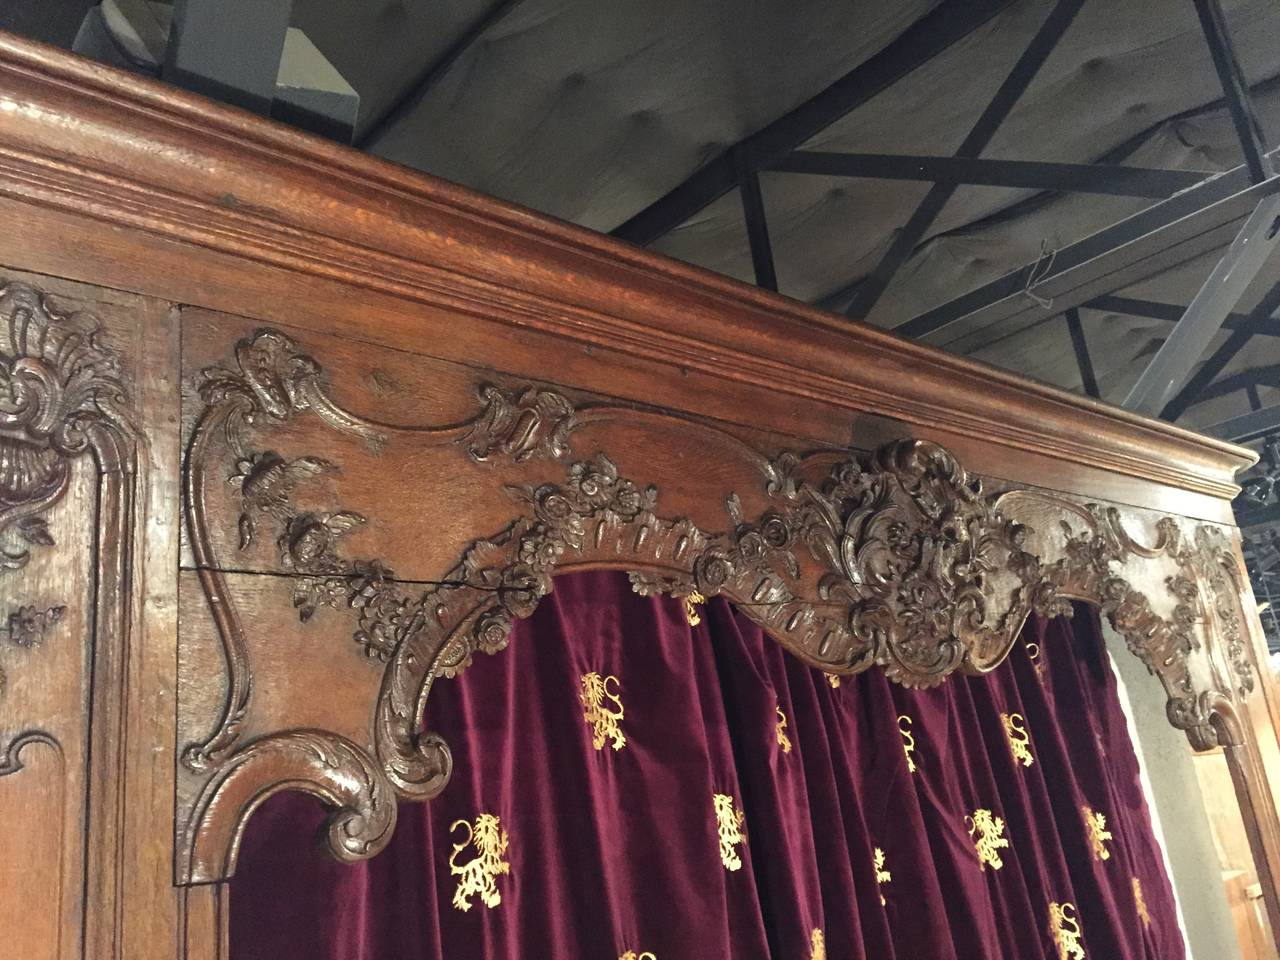 Antique French Boiserie Door Surround from the 1700s For Sale 3